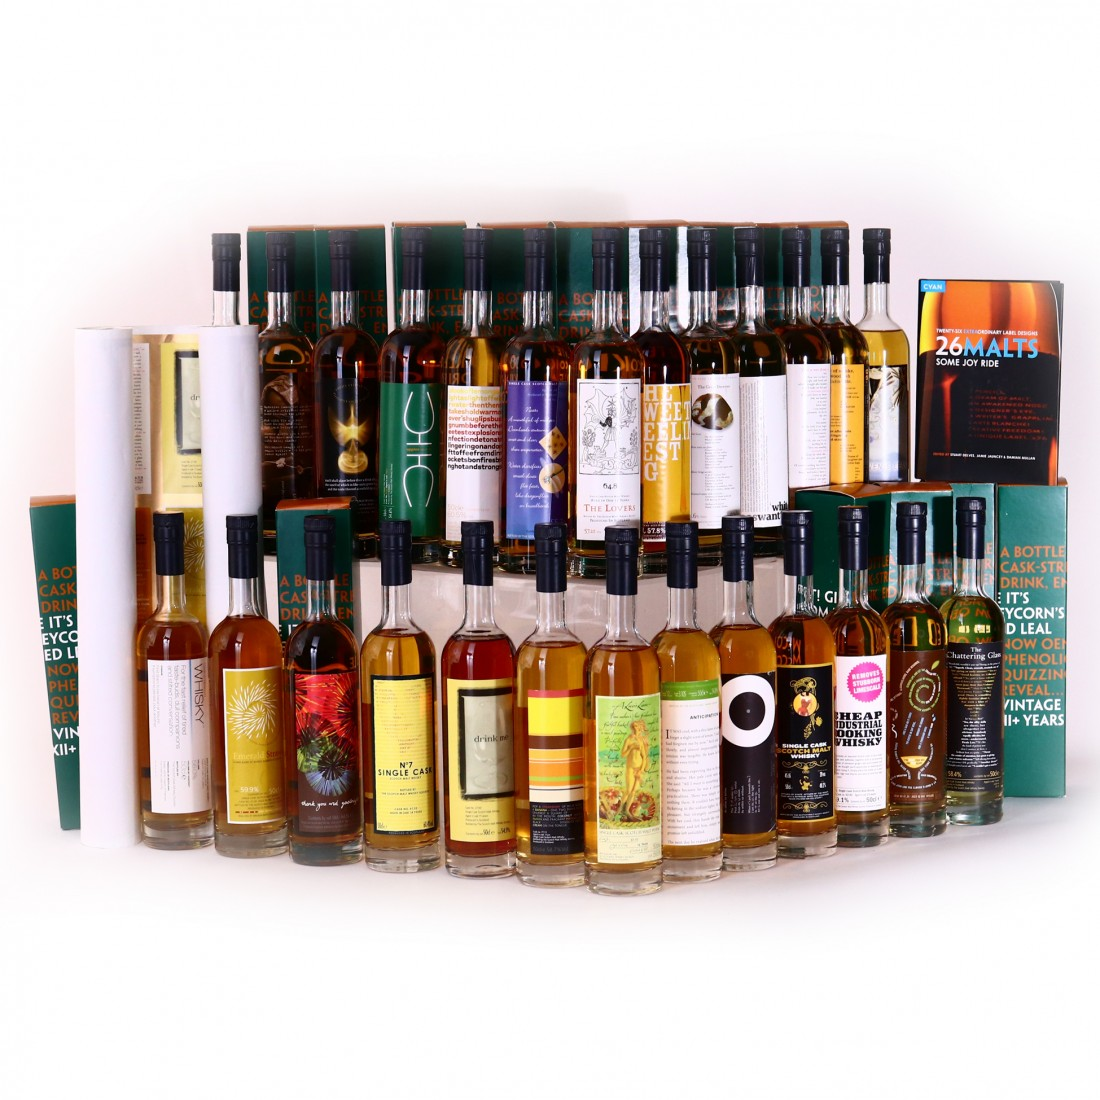 SMWS 26 Malts Collection 26 x 50cl